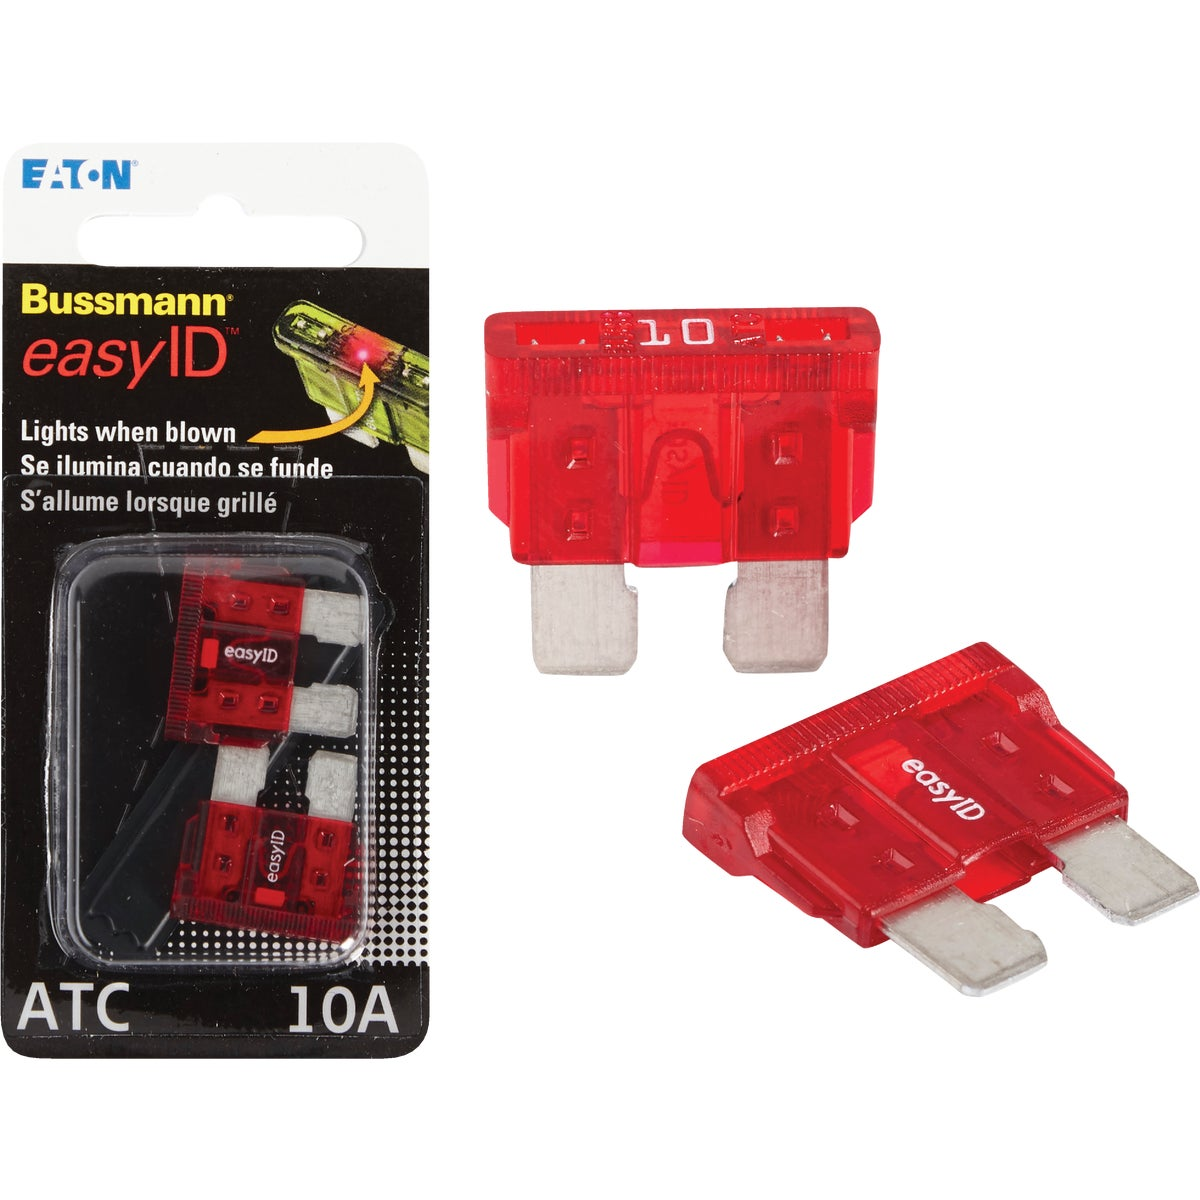 2PK 10A ATC EASY ID FUSE - BP/ATC-10ID by Bussmann Cooper